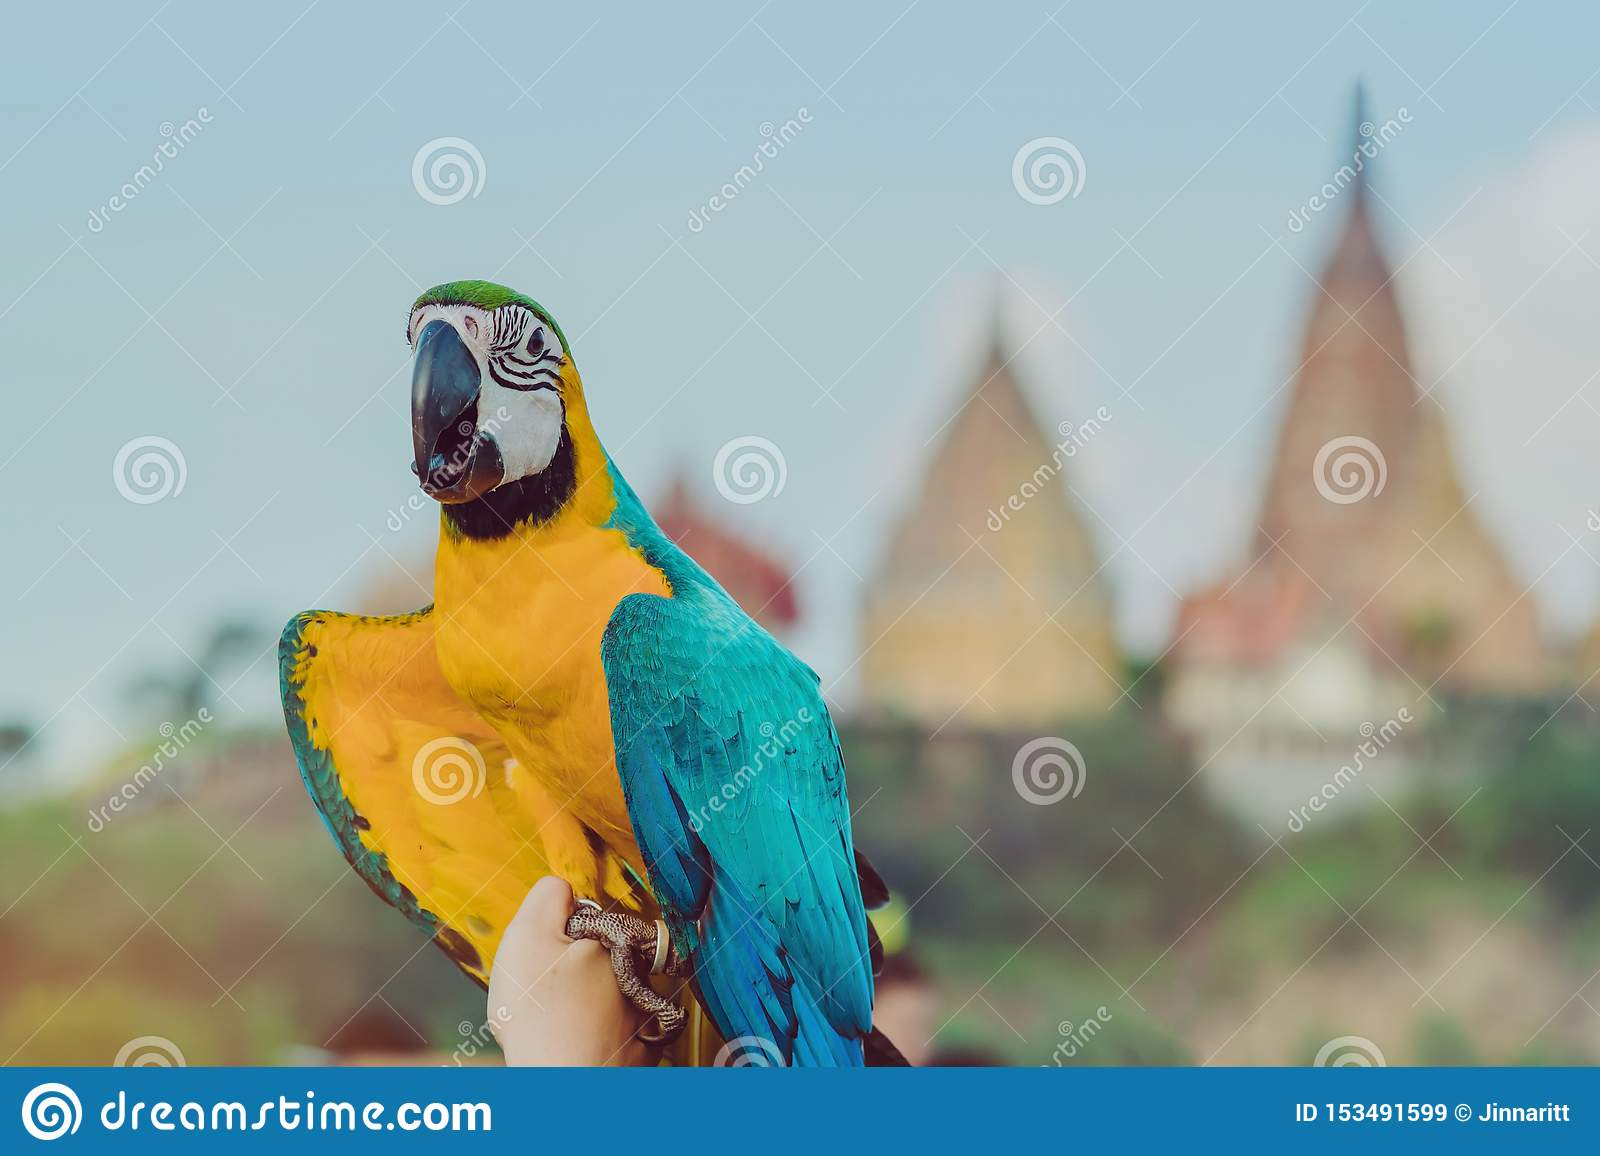 Blue and yellow macaw parrot wait to fly on the hand